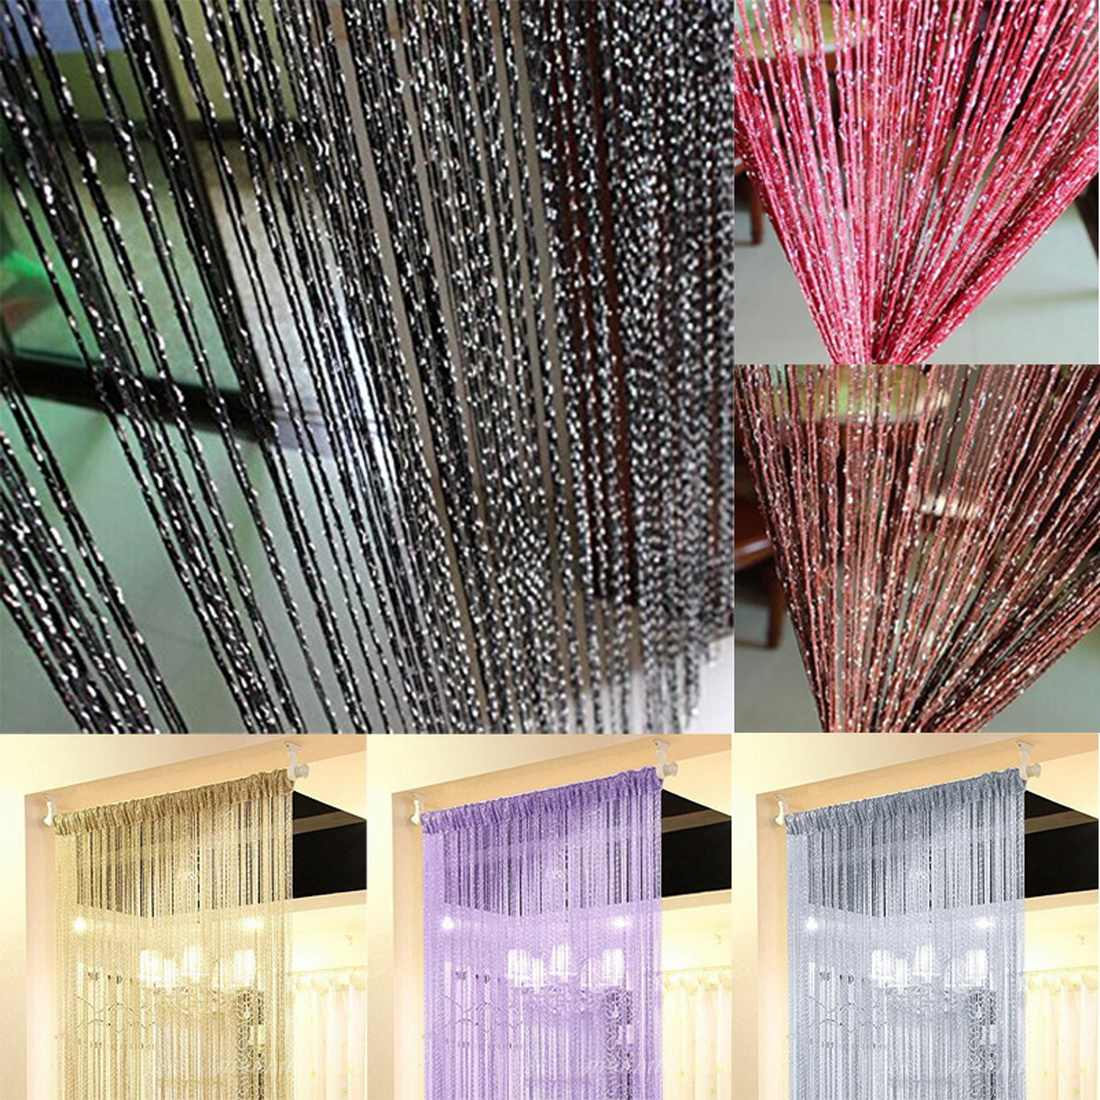 DIDIHOU 200x100cm Modern Cute Flash Line Shiny Tassel String Door Curtain Window Room Divider Curtain Valance Home Decoration